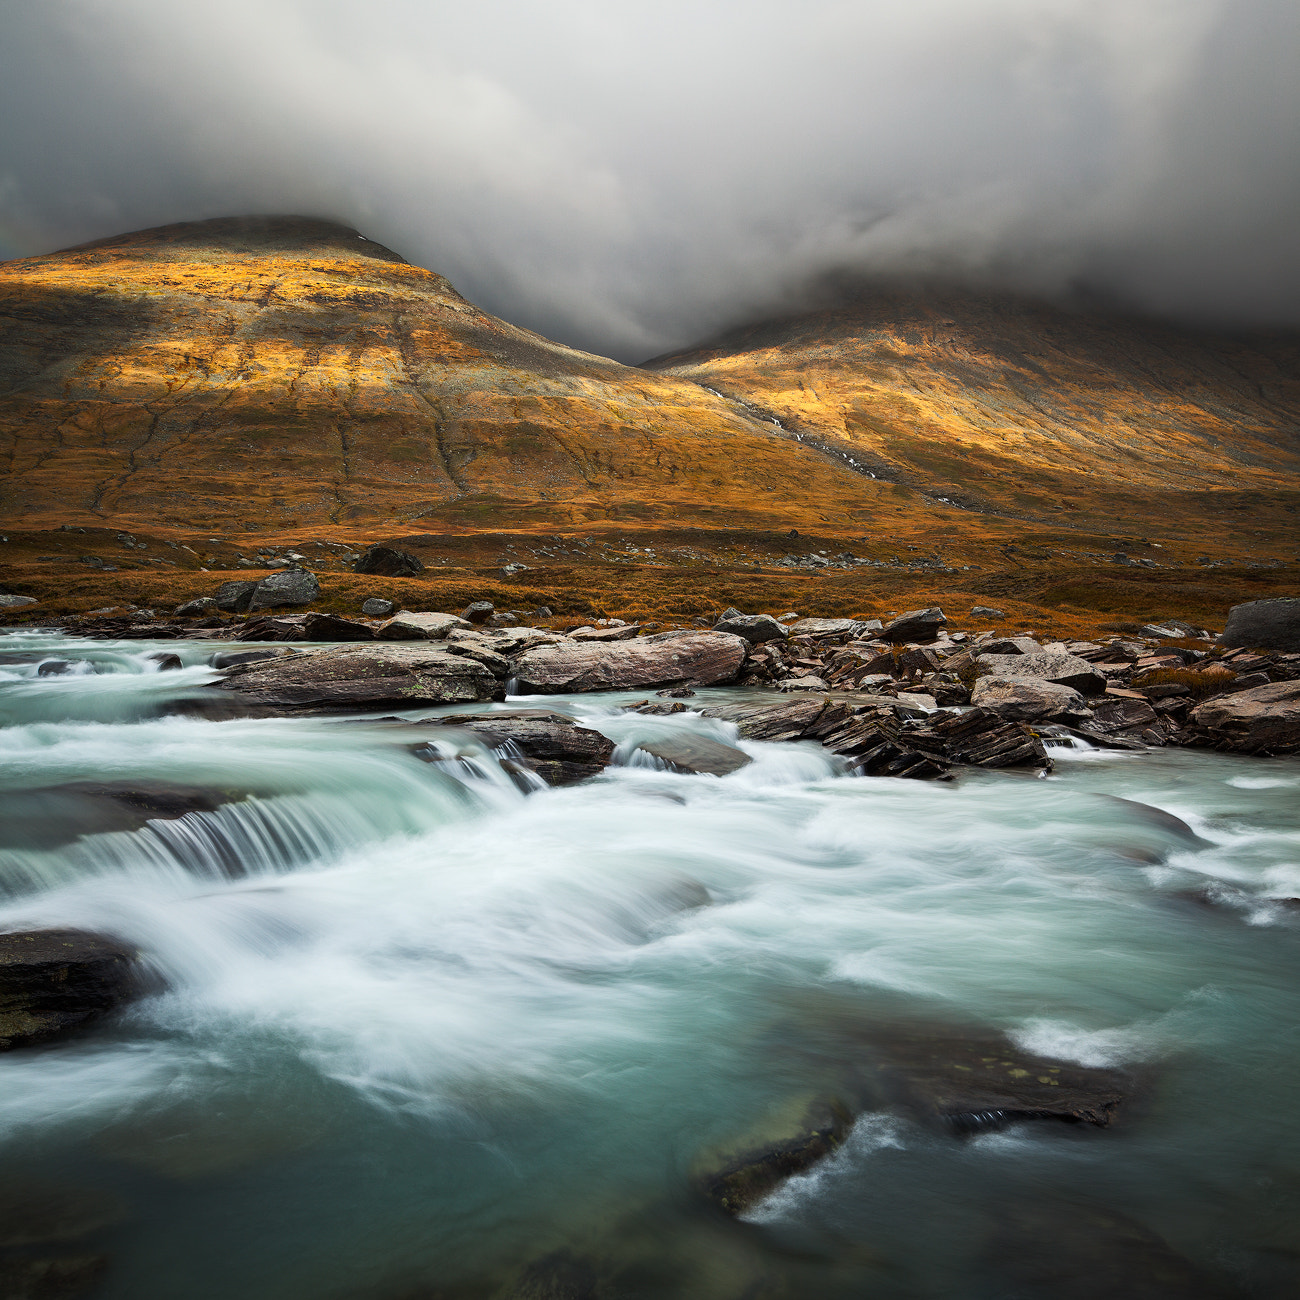 Photograph Breakthrough by Magnus Lindbom on 500px